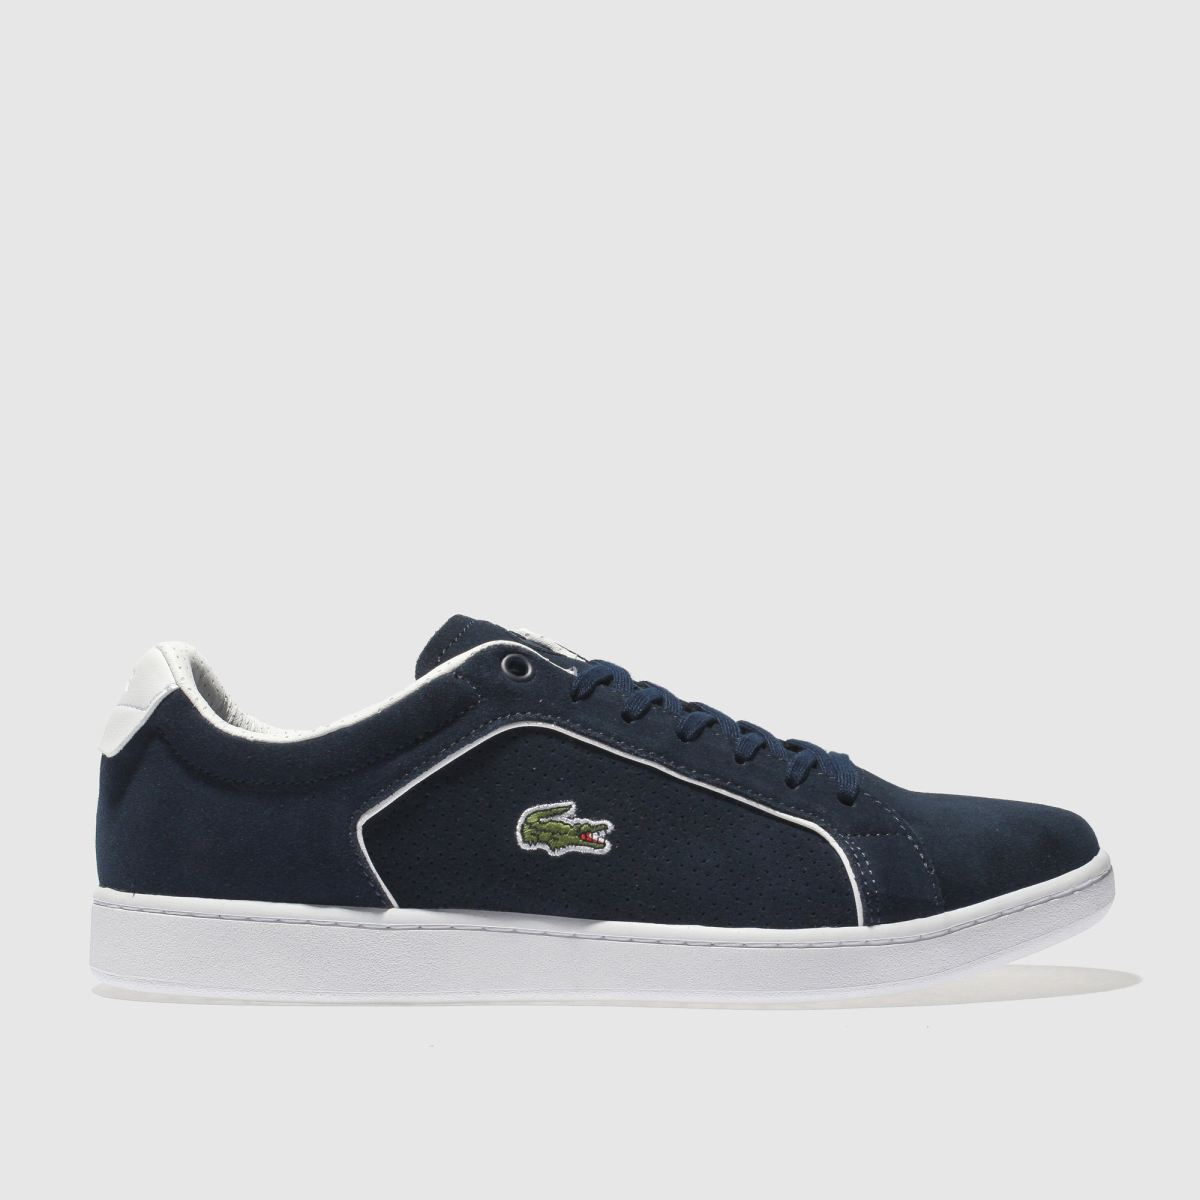 Lacoste Navy & White Carnaby Evo Trainers